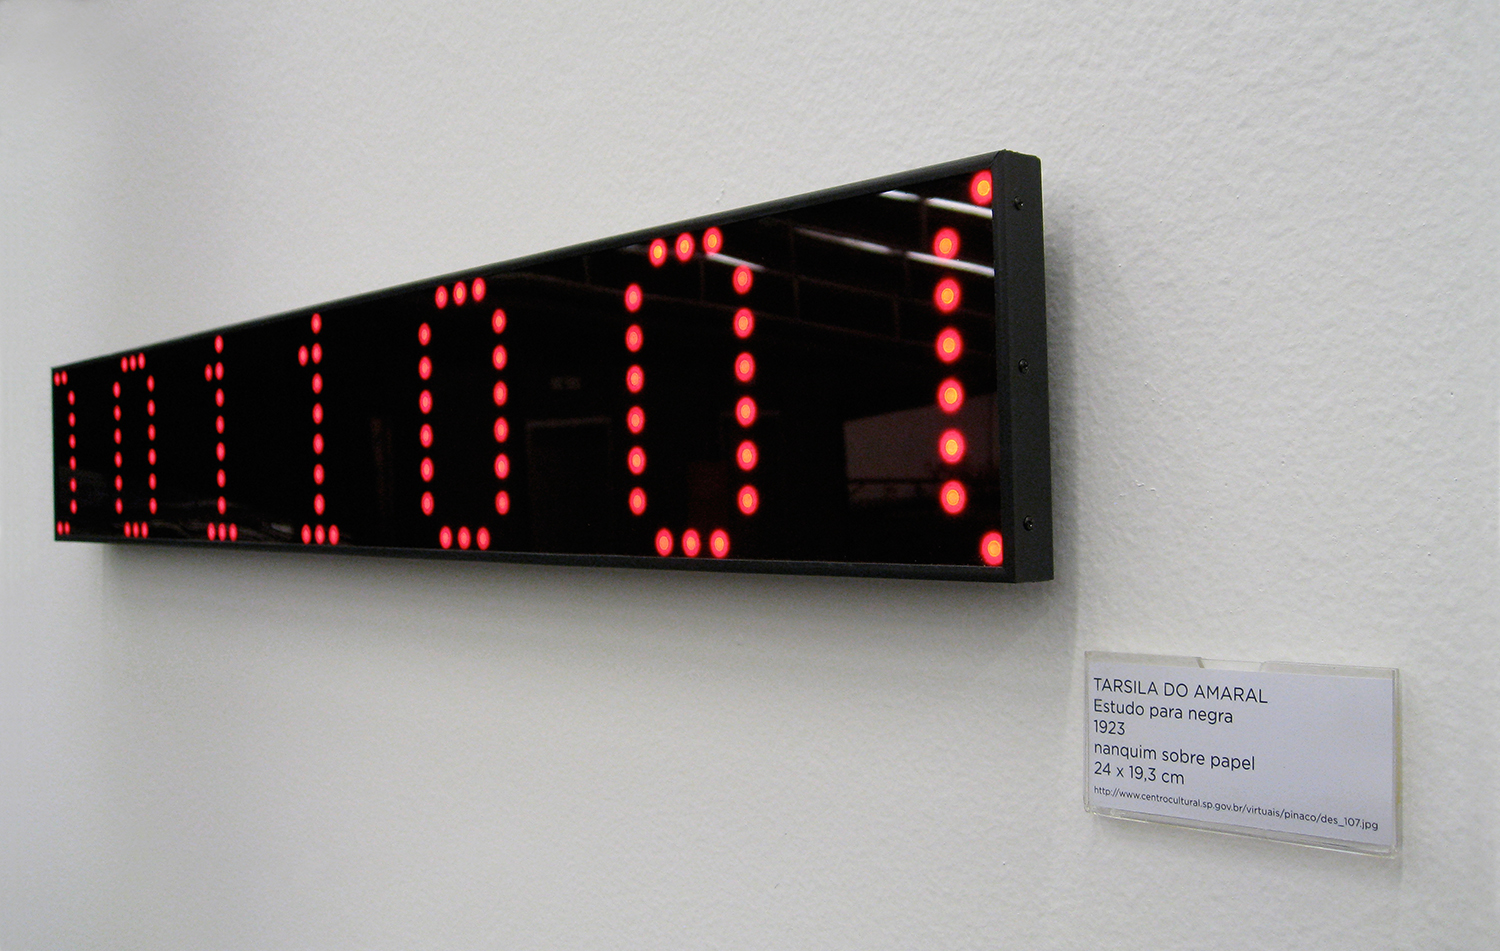 Solo showat São Paulo Cultural Center  , November 2007. Work shown:  Collection (2007).